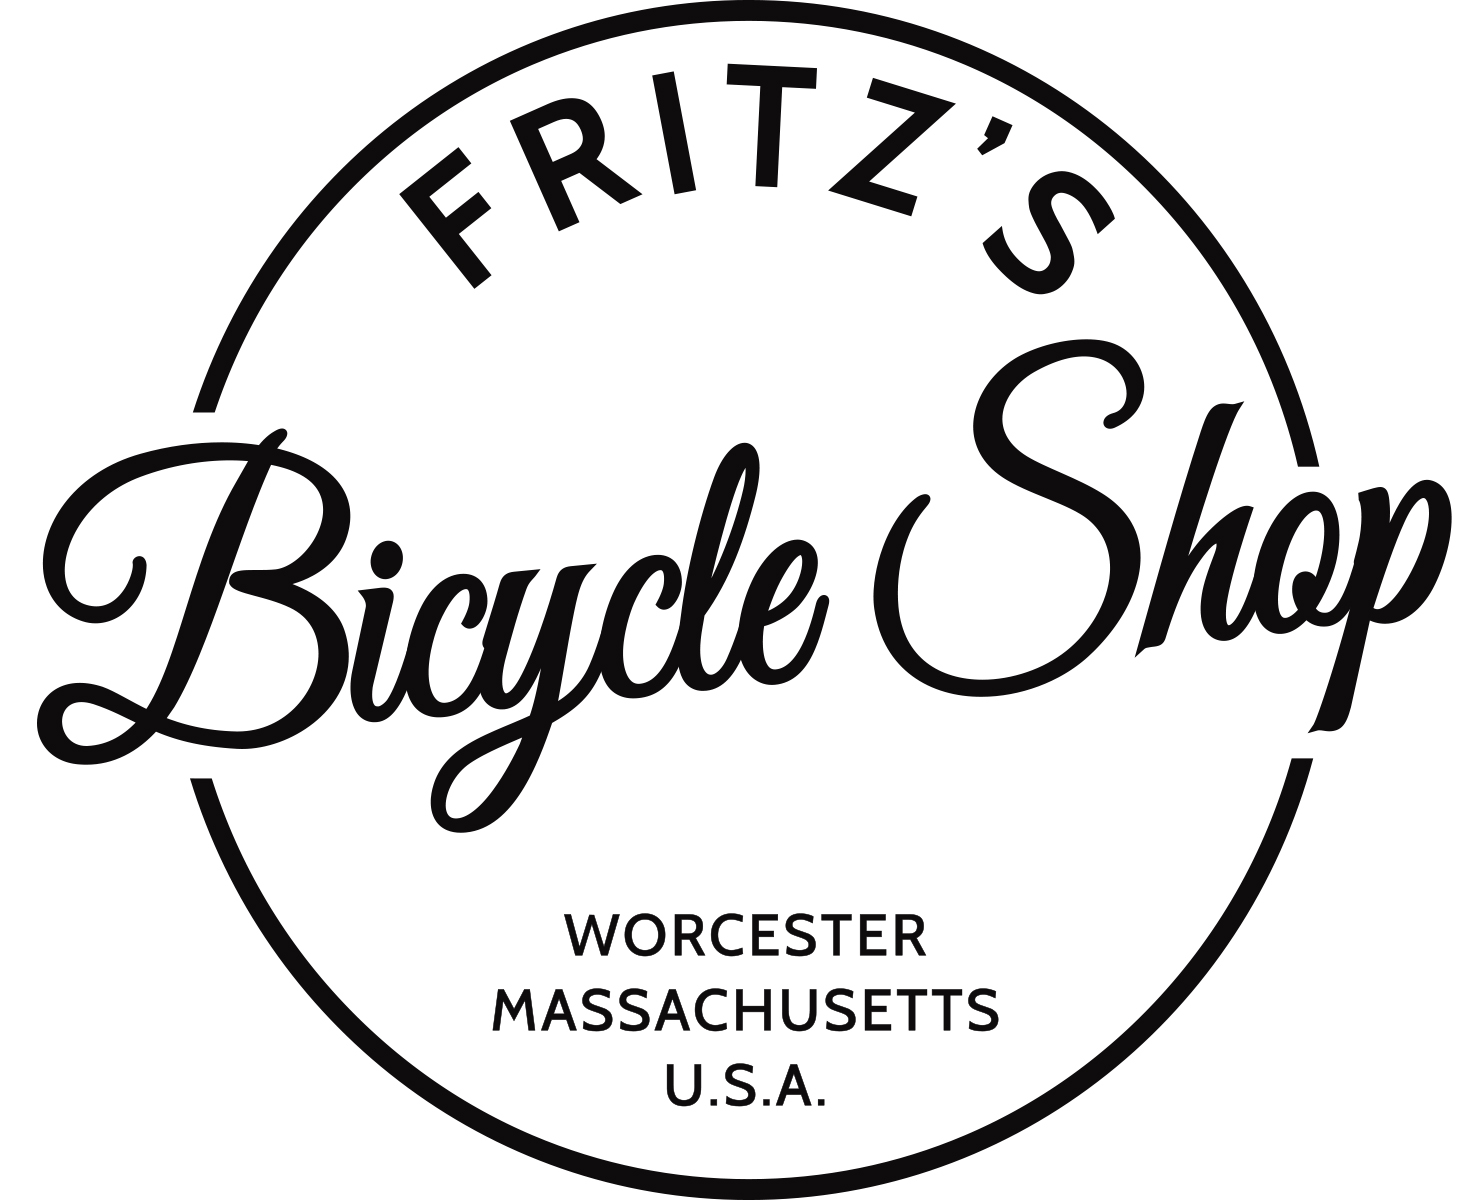 Sponsor Fritz's Bicycle Shop